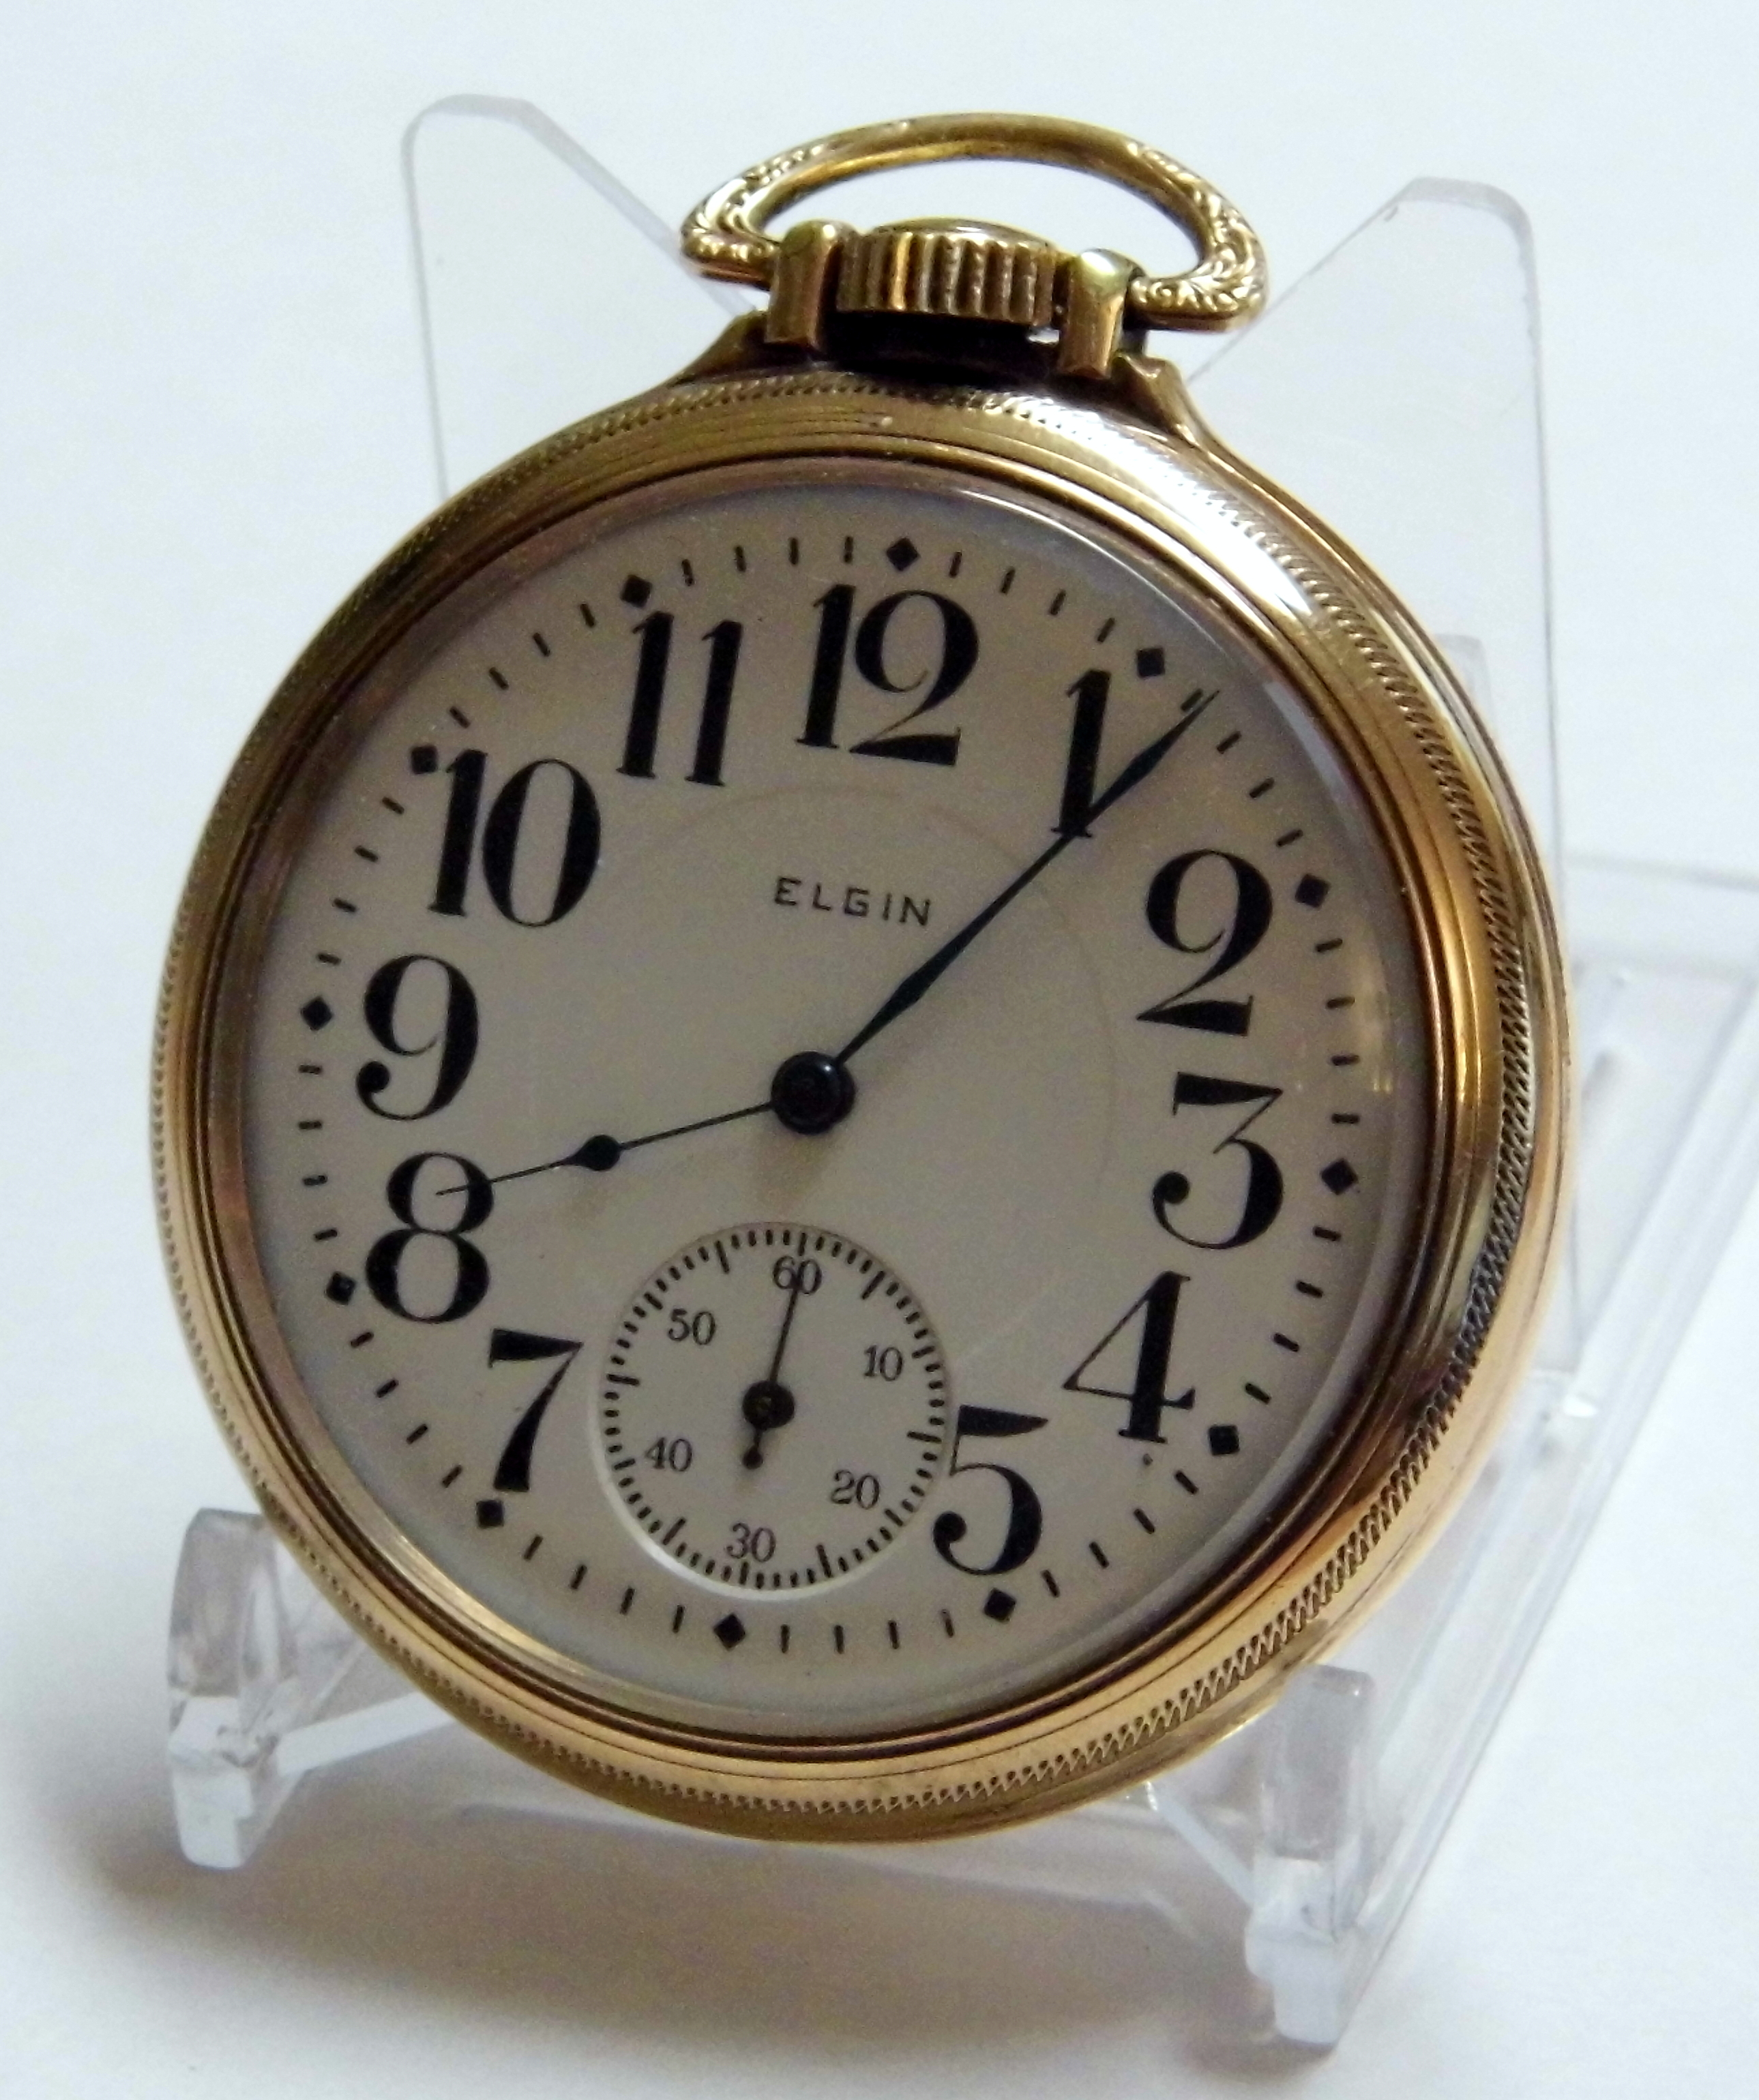 Elgin Gold Watch Value